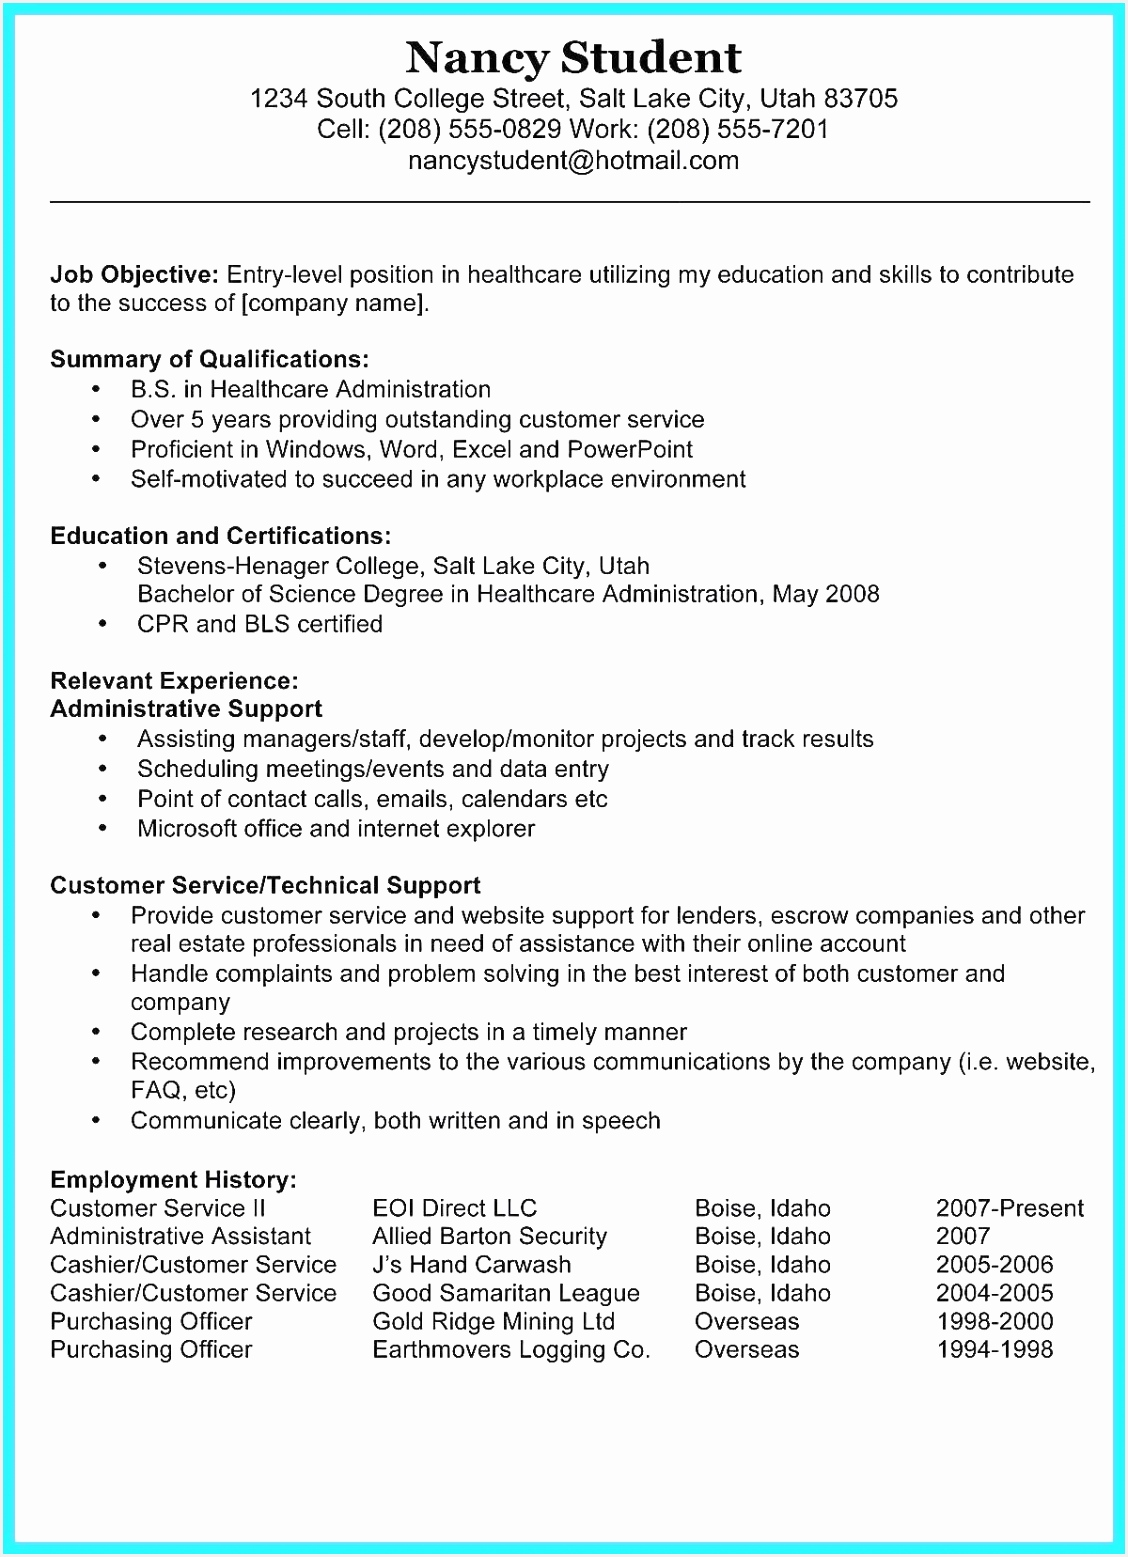 Sample Job History Letter New Resumes For Jobs Awesome Luxury Examples Resumes Ecologist Resume 0d 15571128hoceb